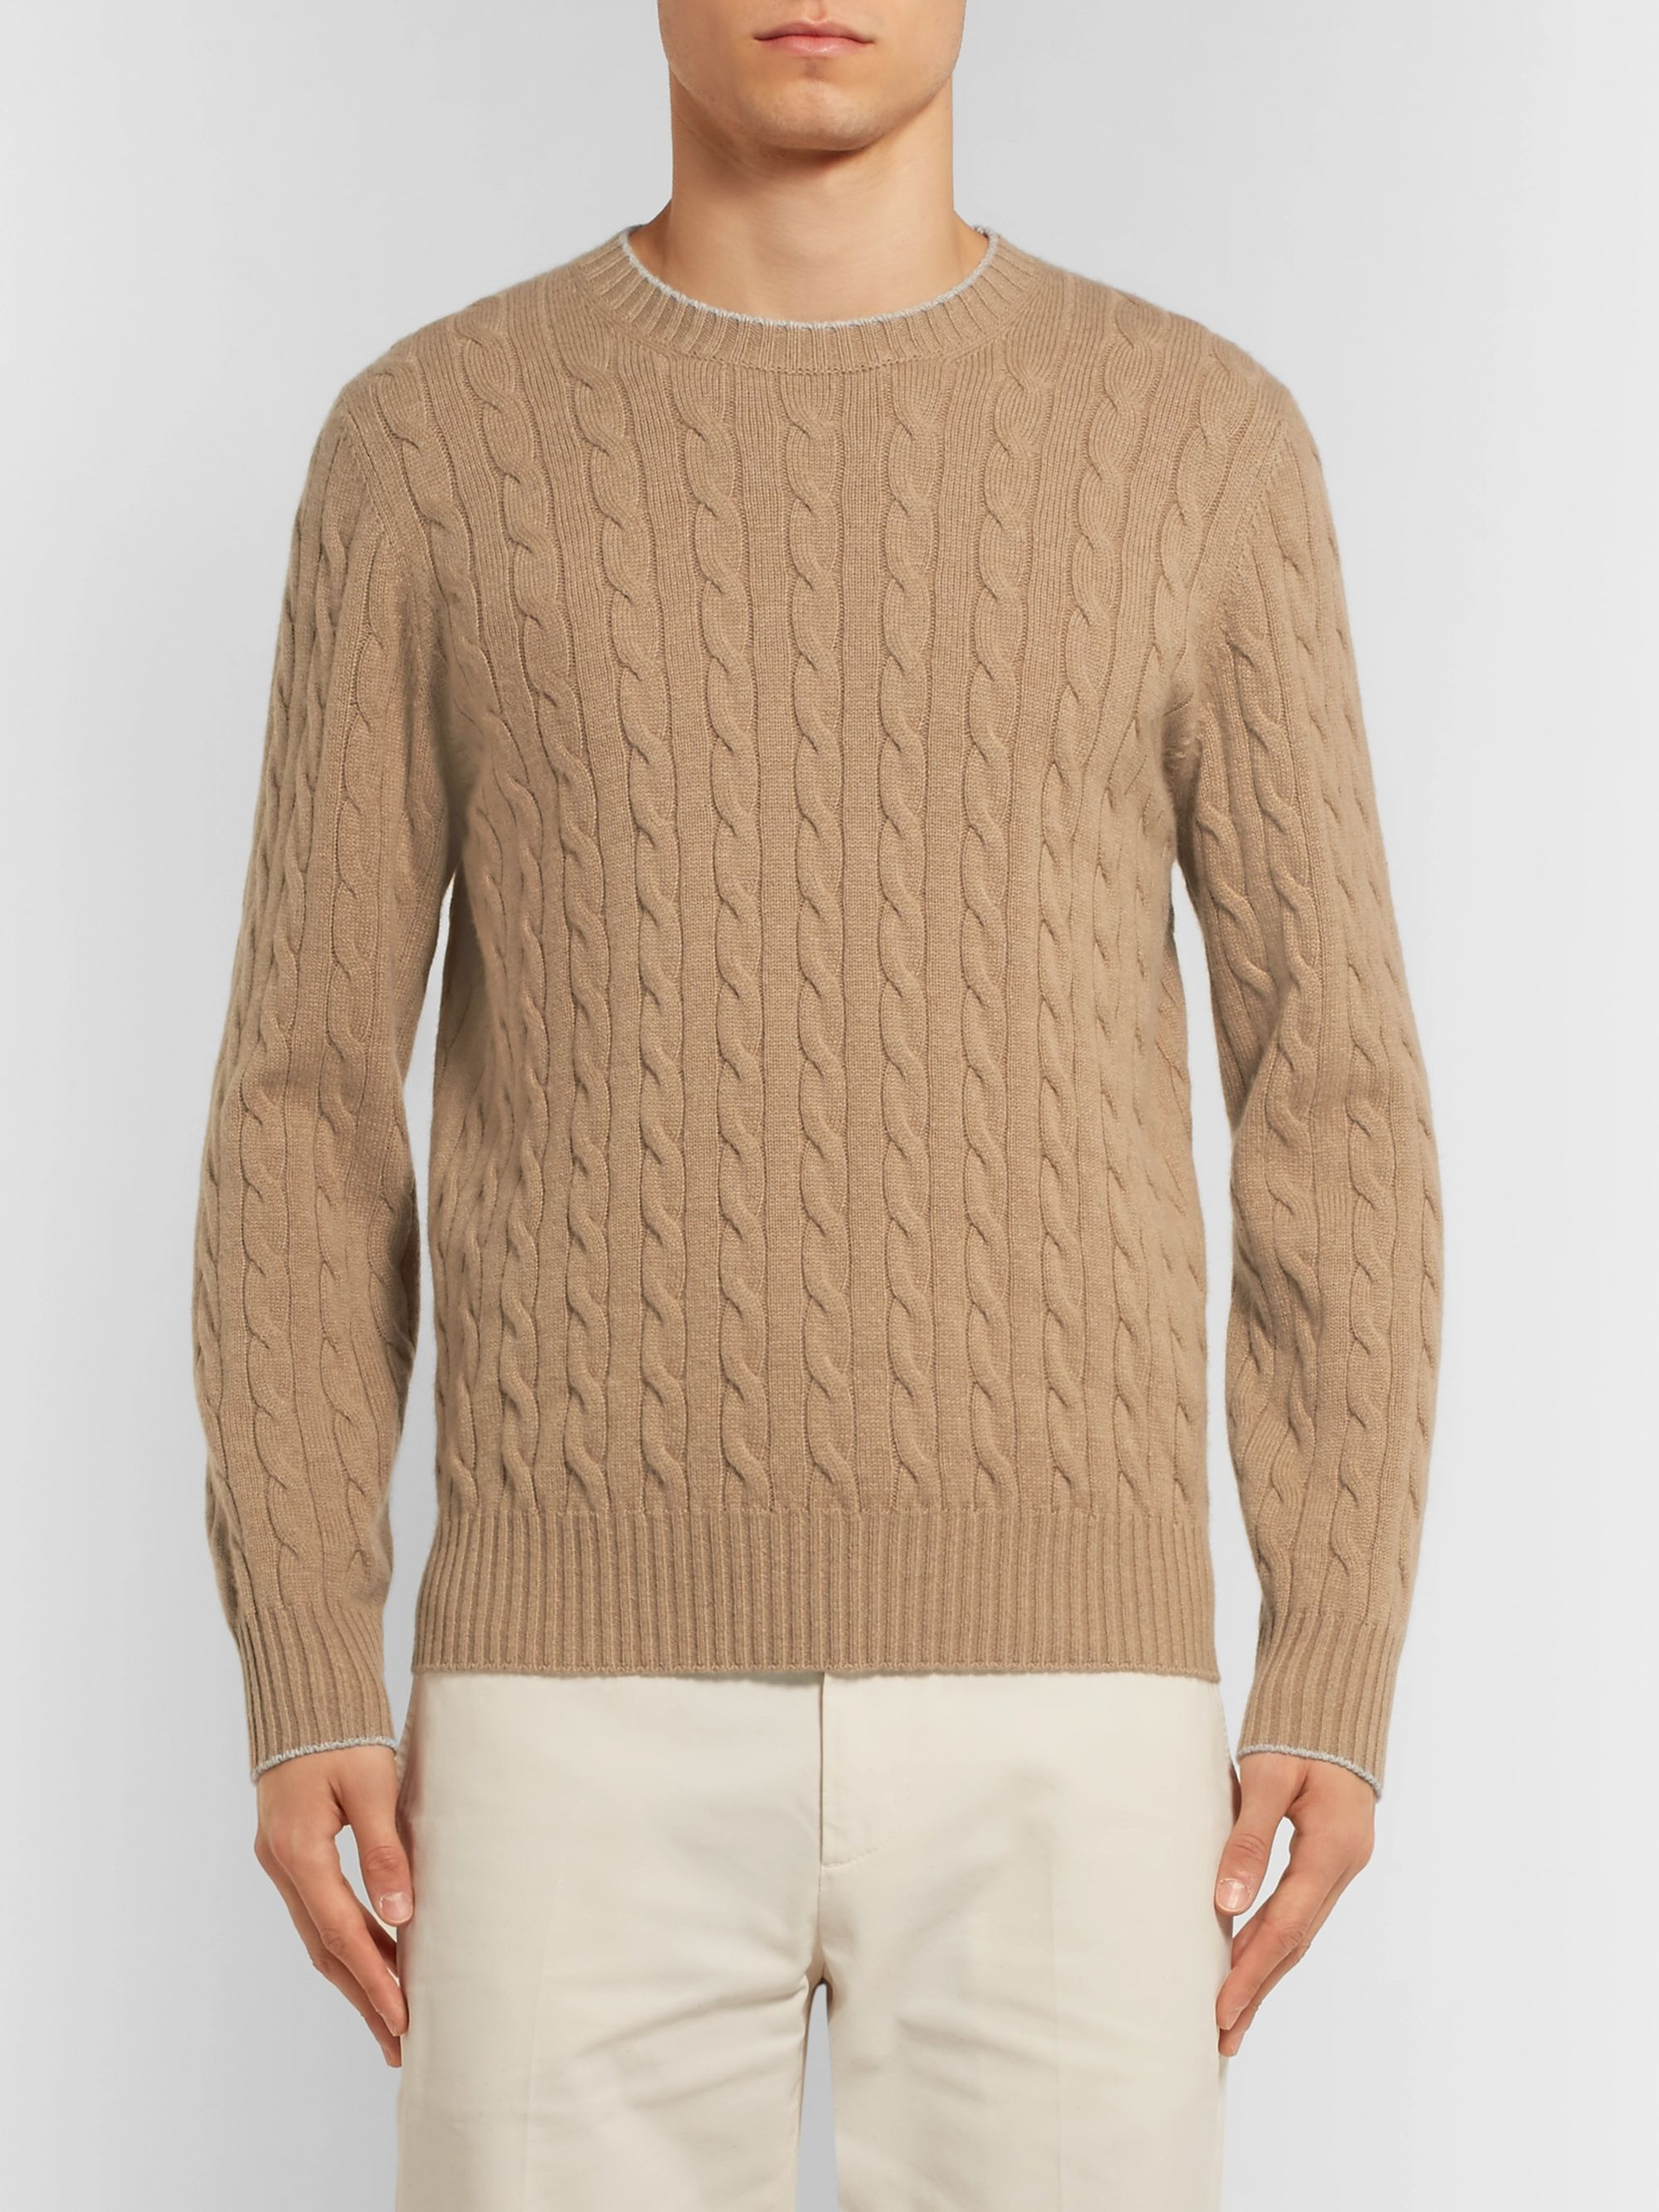 Brunello Cucinelli Contrast-Tipped Cable-Knit Cashmere Sweater